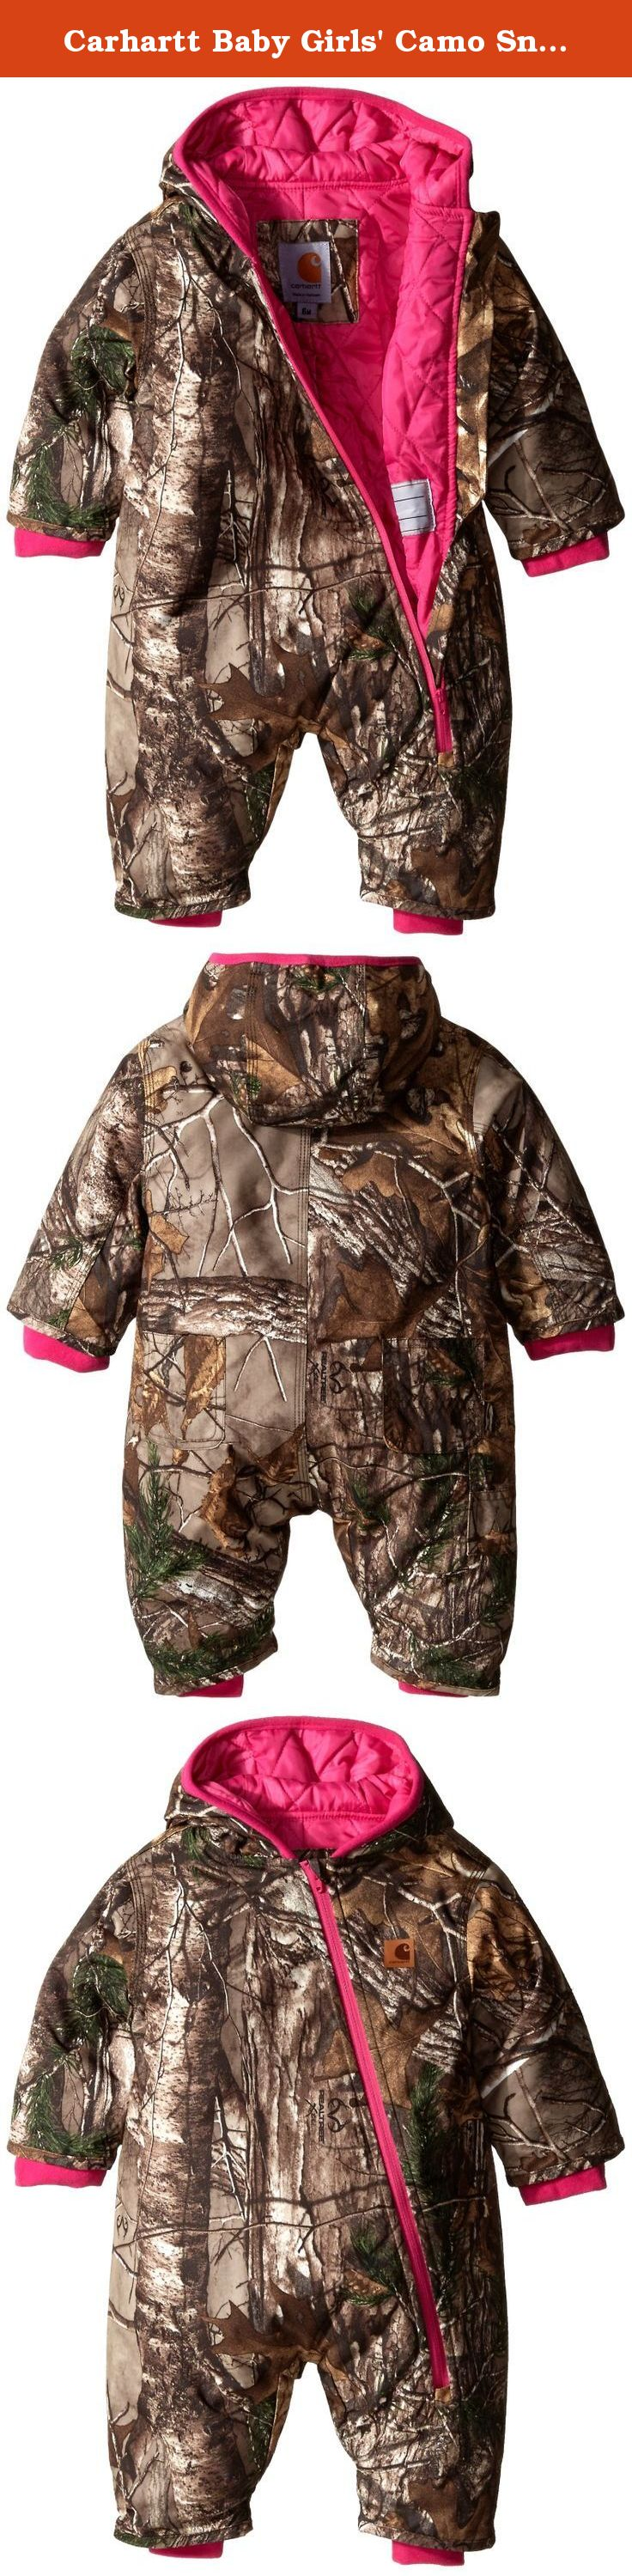 Carhartt Baby Girls' Camo Snowsuit QULT Taff Lined, Dark Brown, 6 Months. Water and wind resistant real tree xtra snowsuit with triple stitched main seams for added durability diagonal full zip and quilted taffeta lining permit easy entry exit.